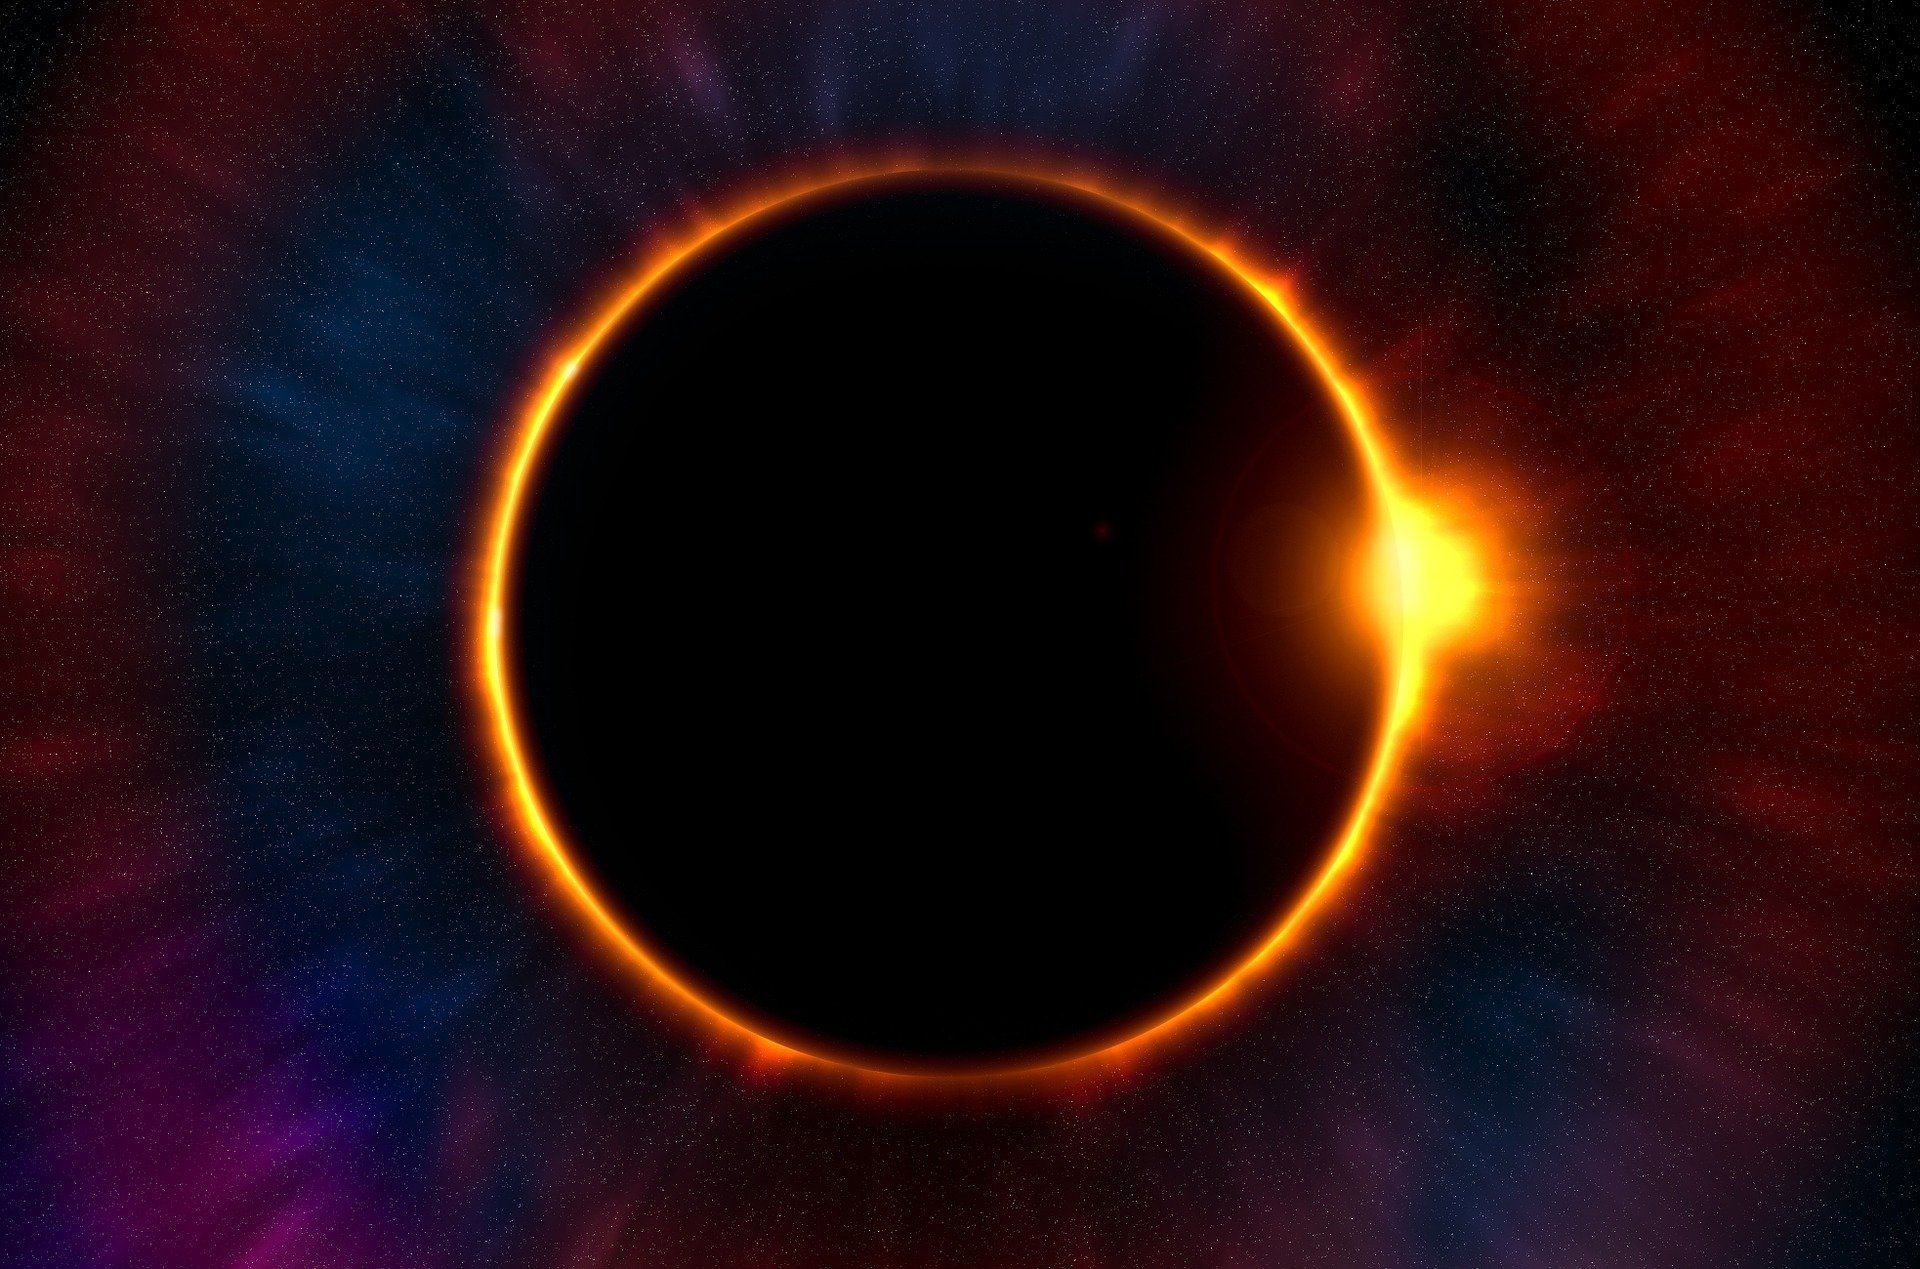 The King, Einstein, and an Eclipse